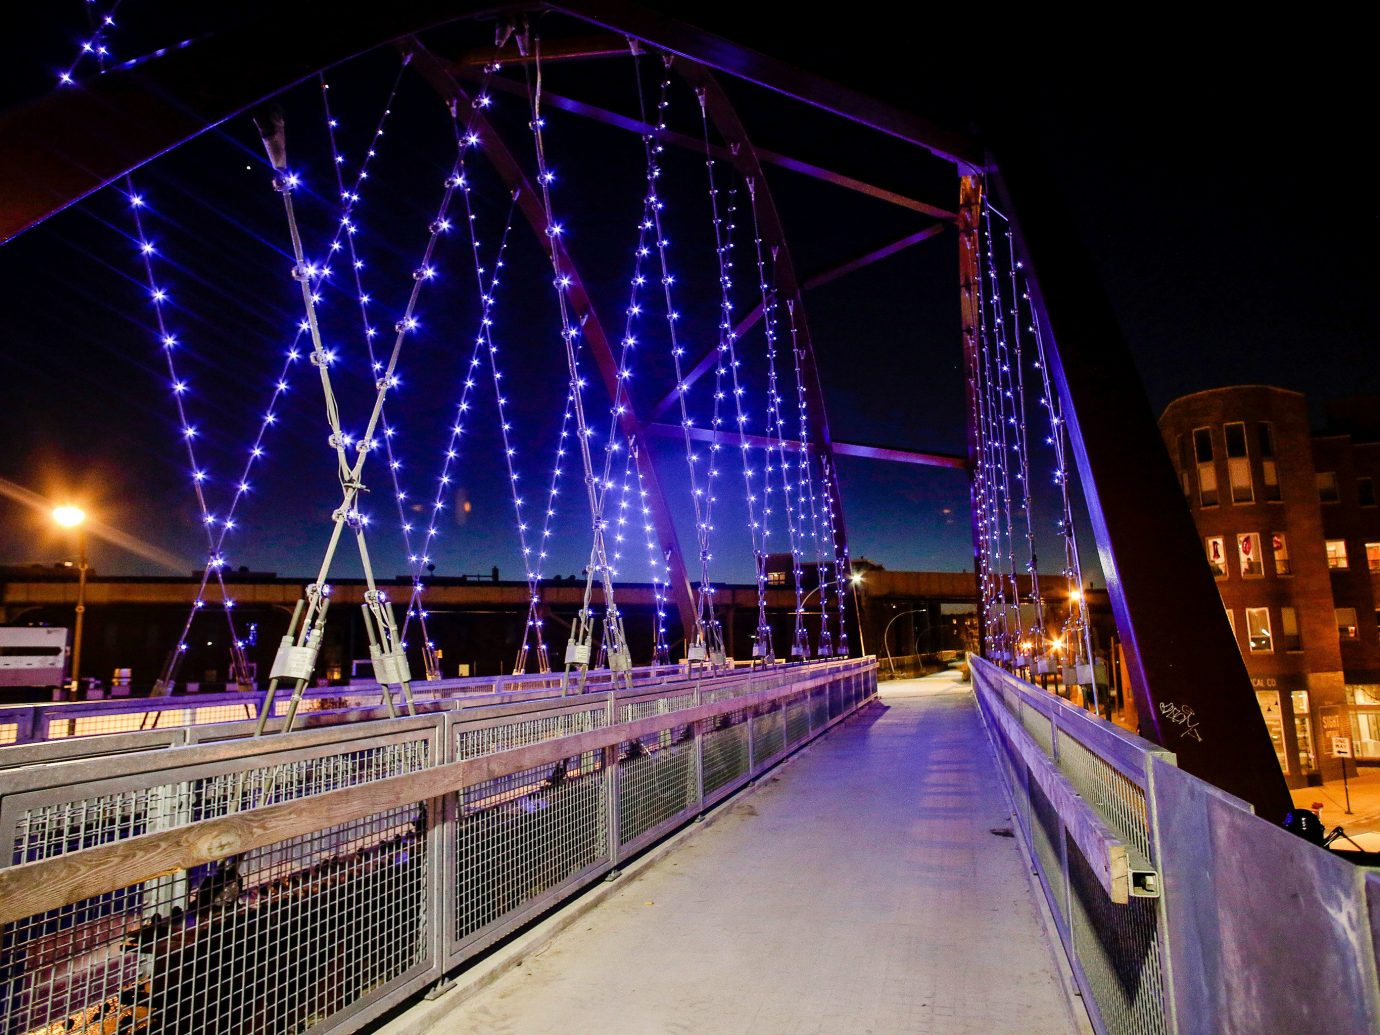 Trip Ideas night landmark light bridge lighting cityscape evening